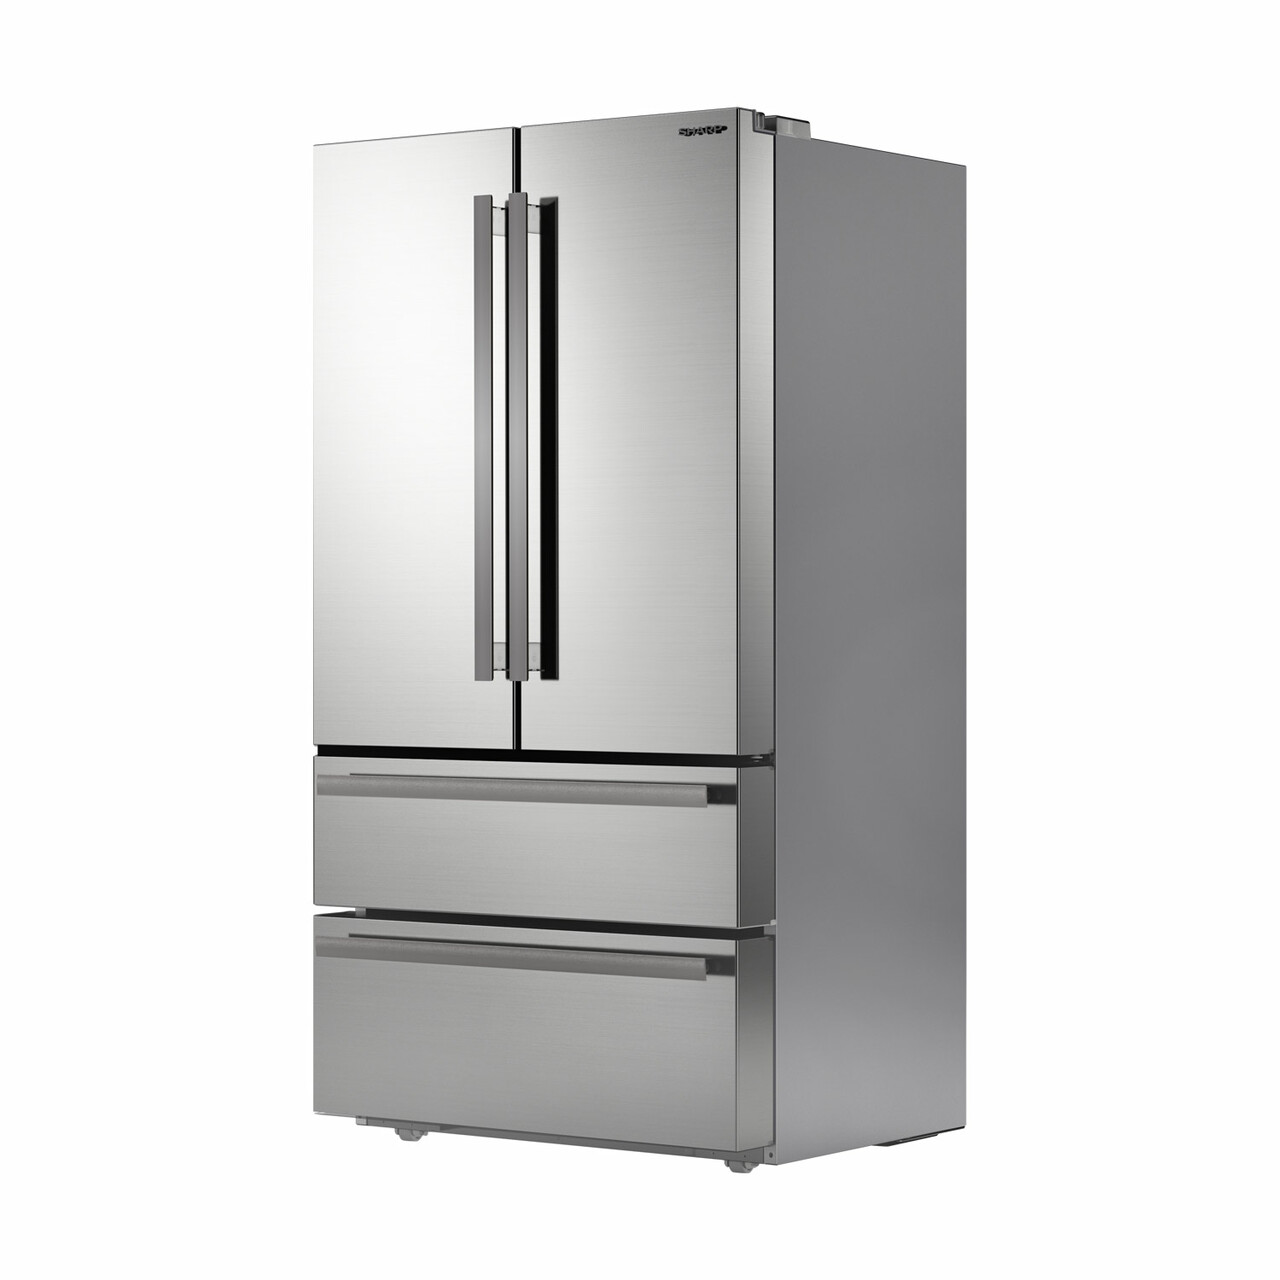 Sharp French 4-Door Refrigerator (SJG2351FS) – left angle view